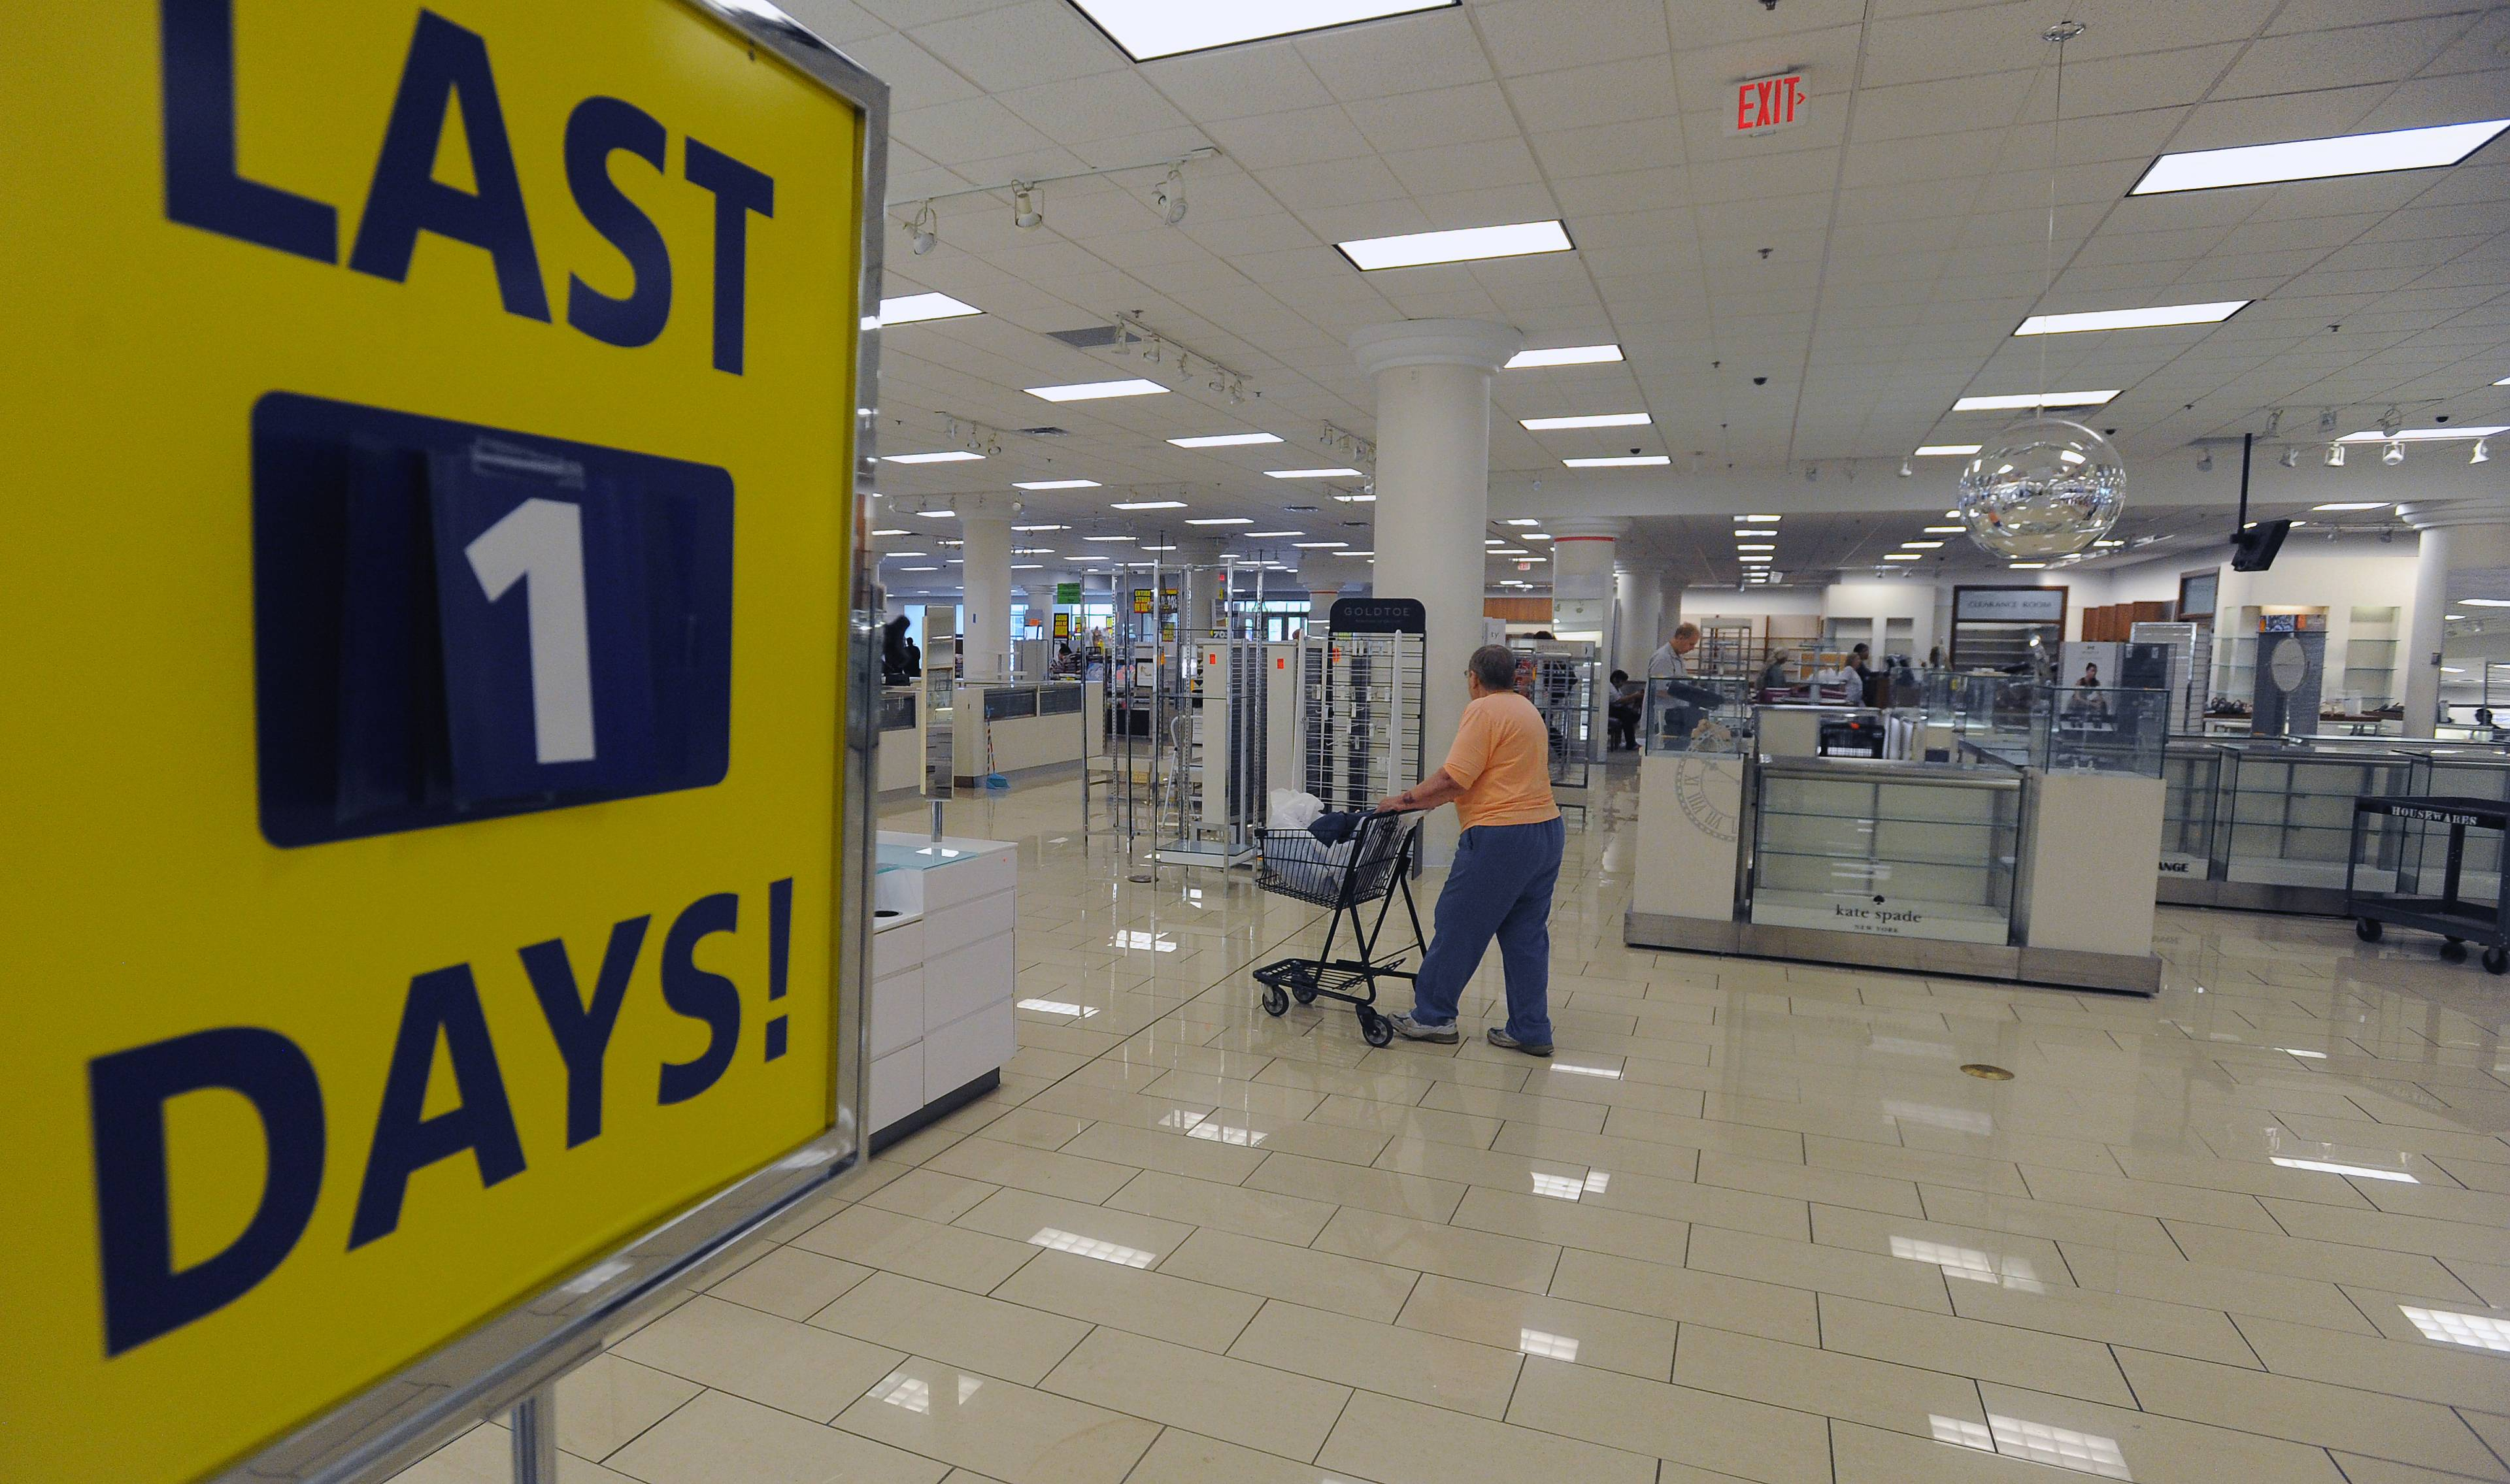 The signs around the store say it all on the last day for the Carson's Pirie Scott store at Randhurst Mall in Mount Prospect.